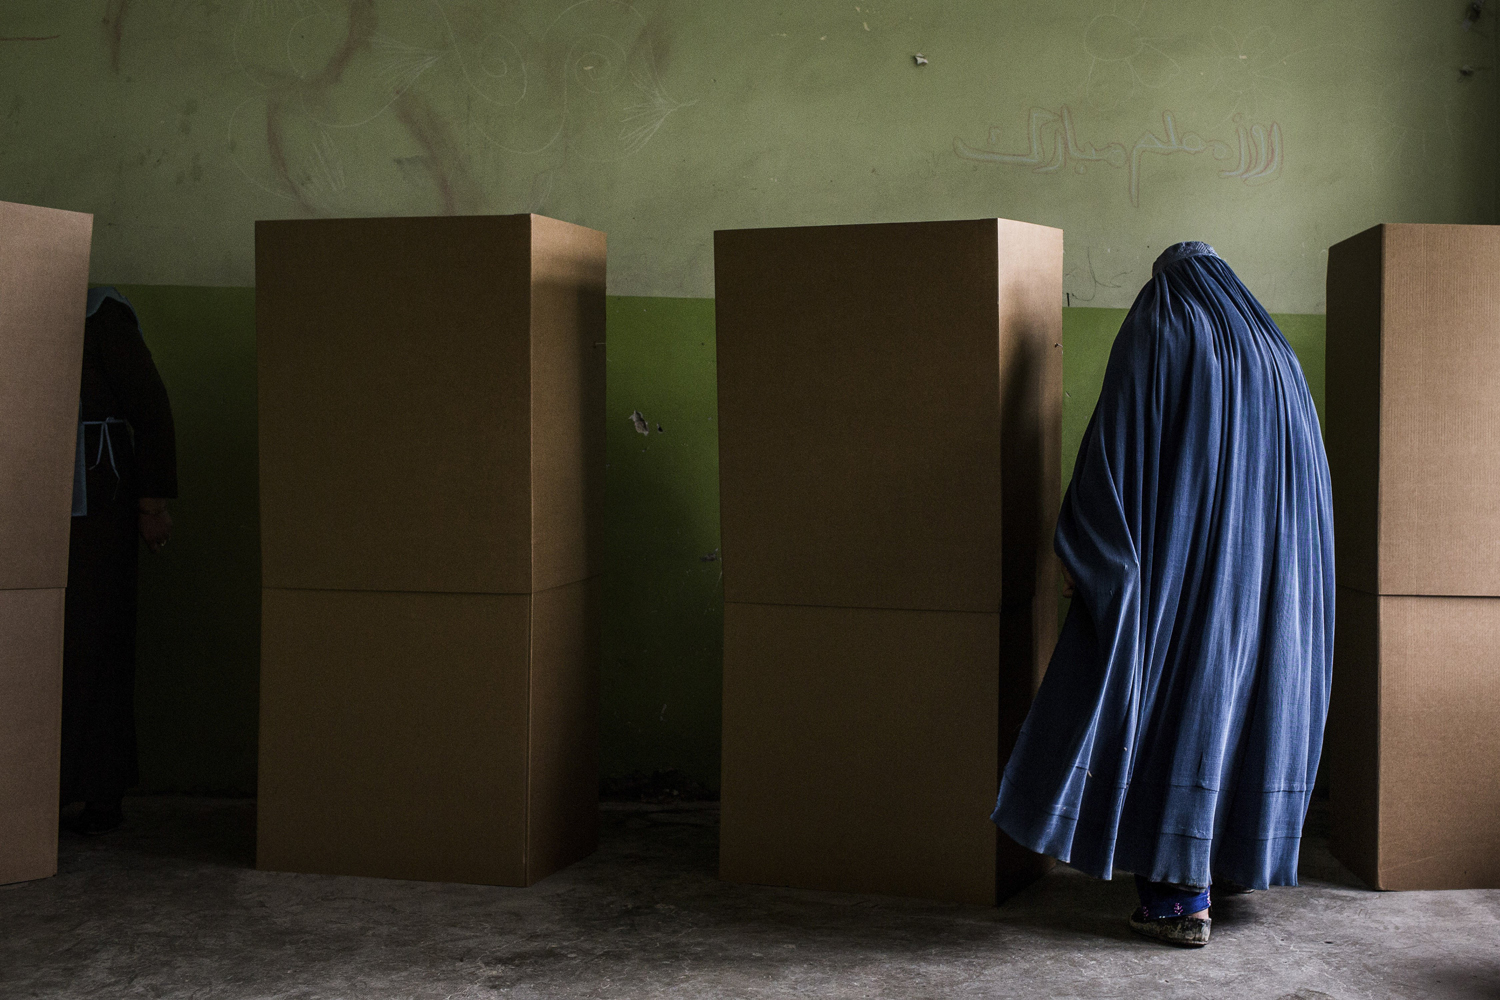 Apr. 5, 2014. A voter prepares to fill out her ballot at a school in Kabul, Afghanistan. Voting hours for the country's general election were extended nationwide due to longer-than-expected lines, and though widespread fears of the Taliban kept roughly one in eight polling centers closed, no heavy attacks had taken place.